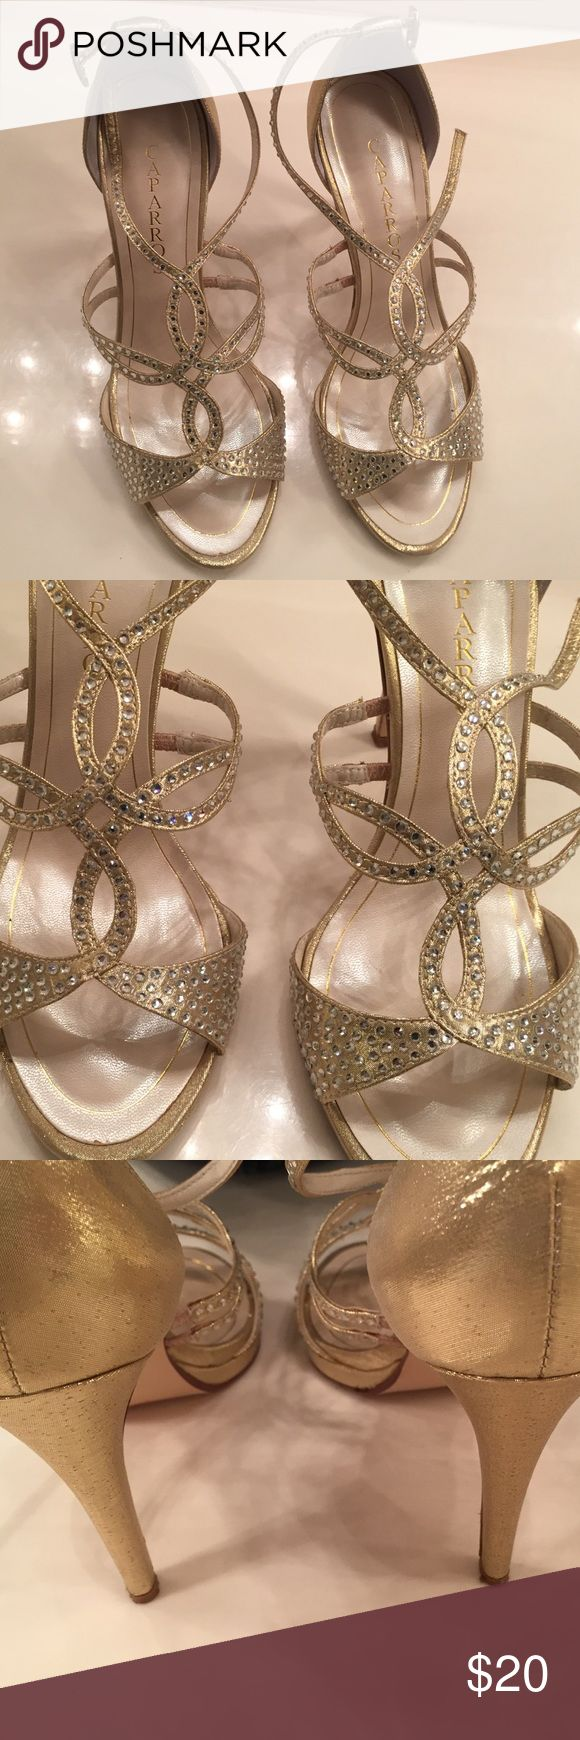 Gold sequin size 9 heels Beautiful Caparros gold heels with sequin strap overlays and buckle around ankles very good shape only worn a few times Caparros Shoes Heels